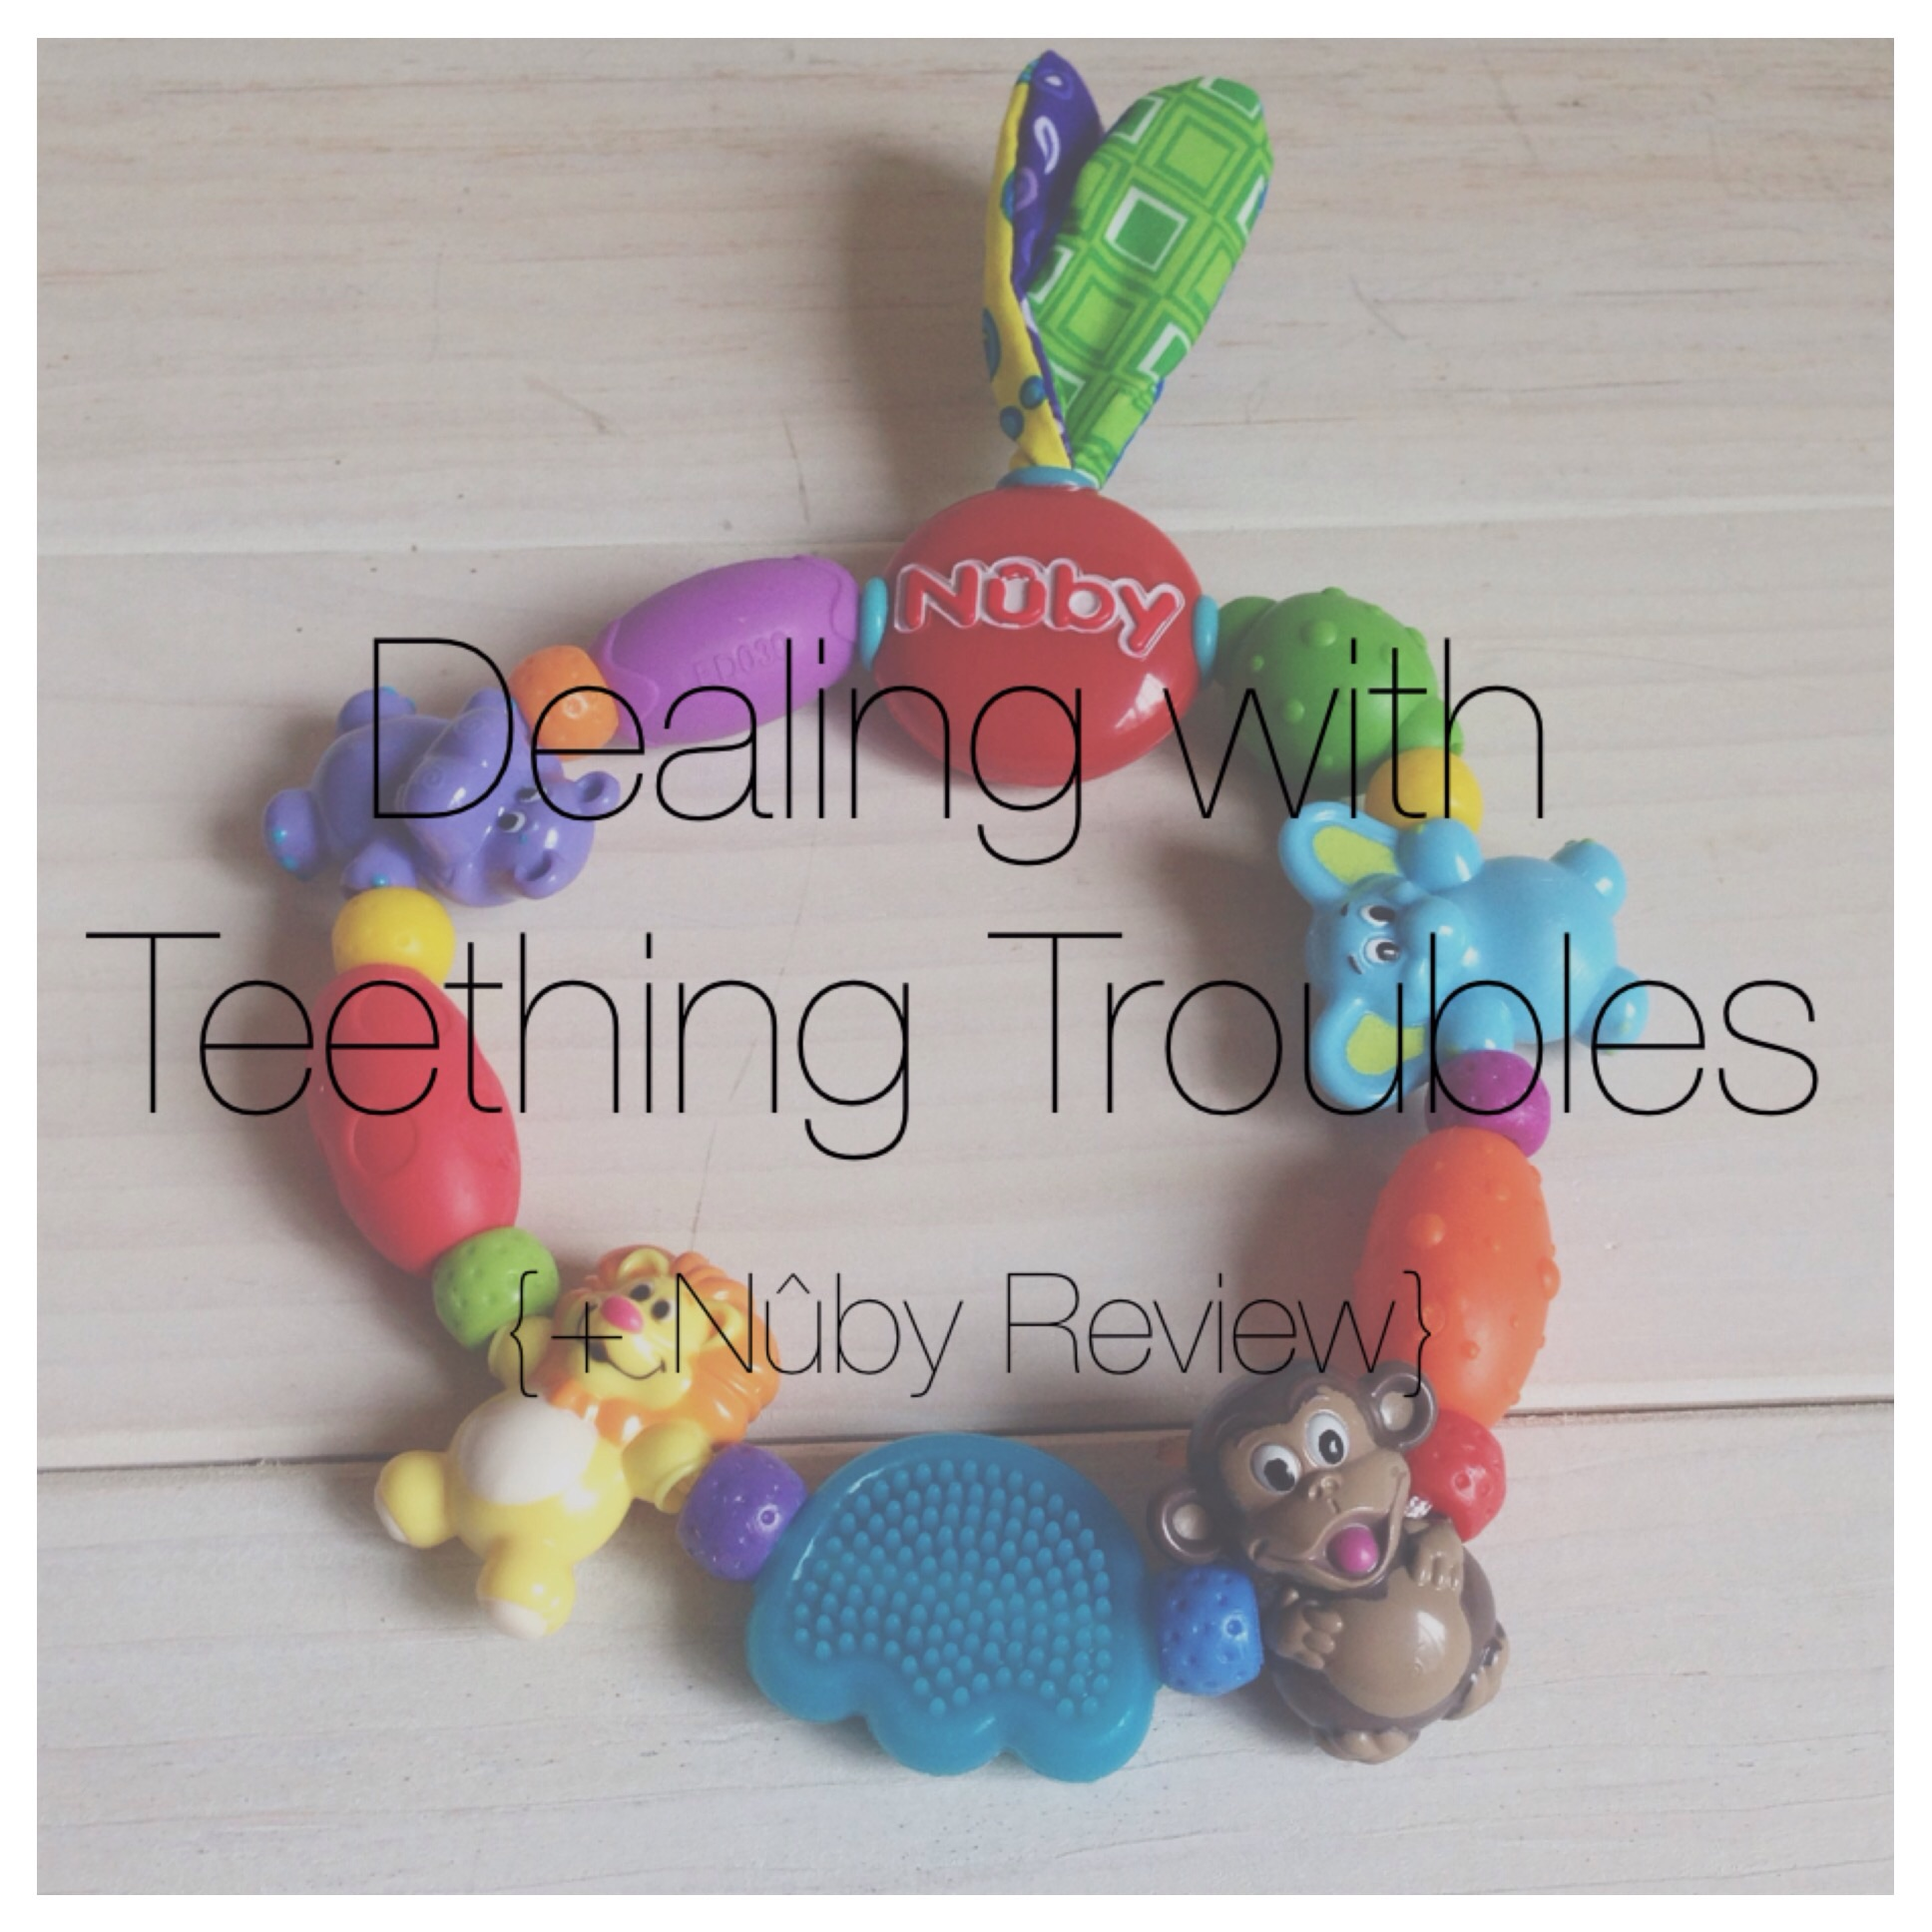 Teething tips for babies and toddlers